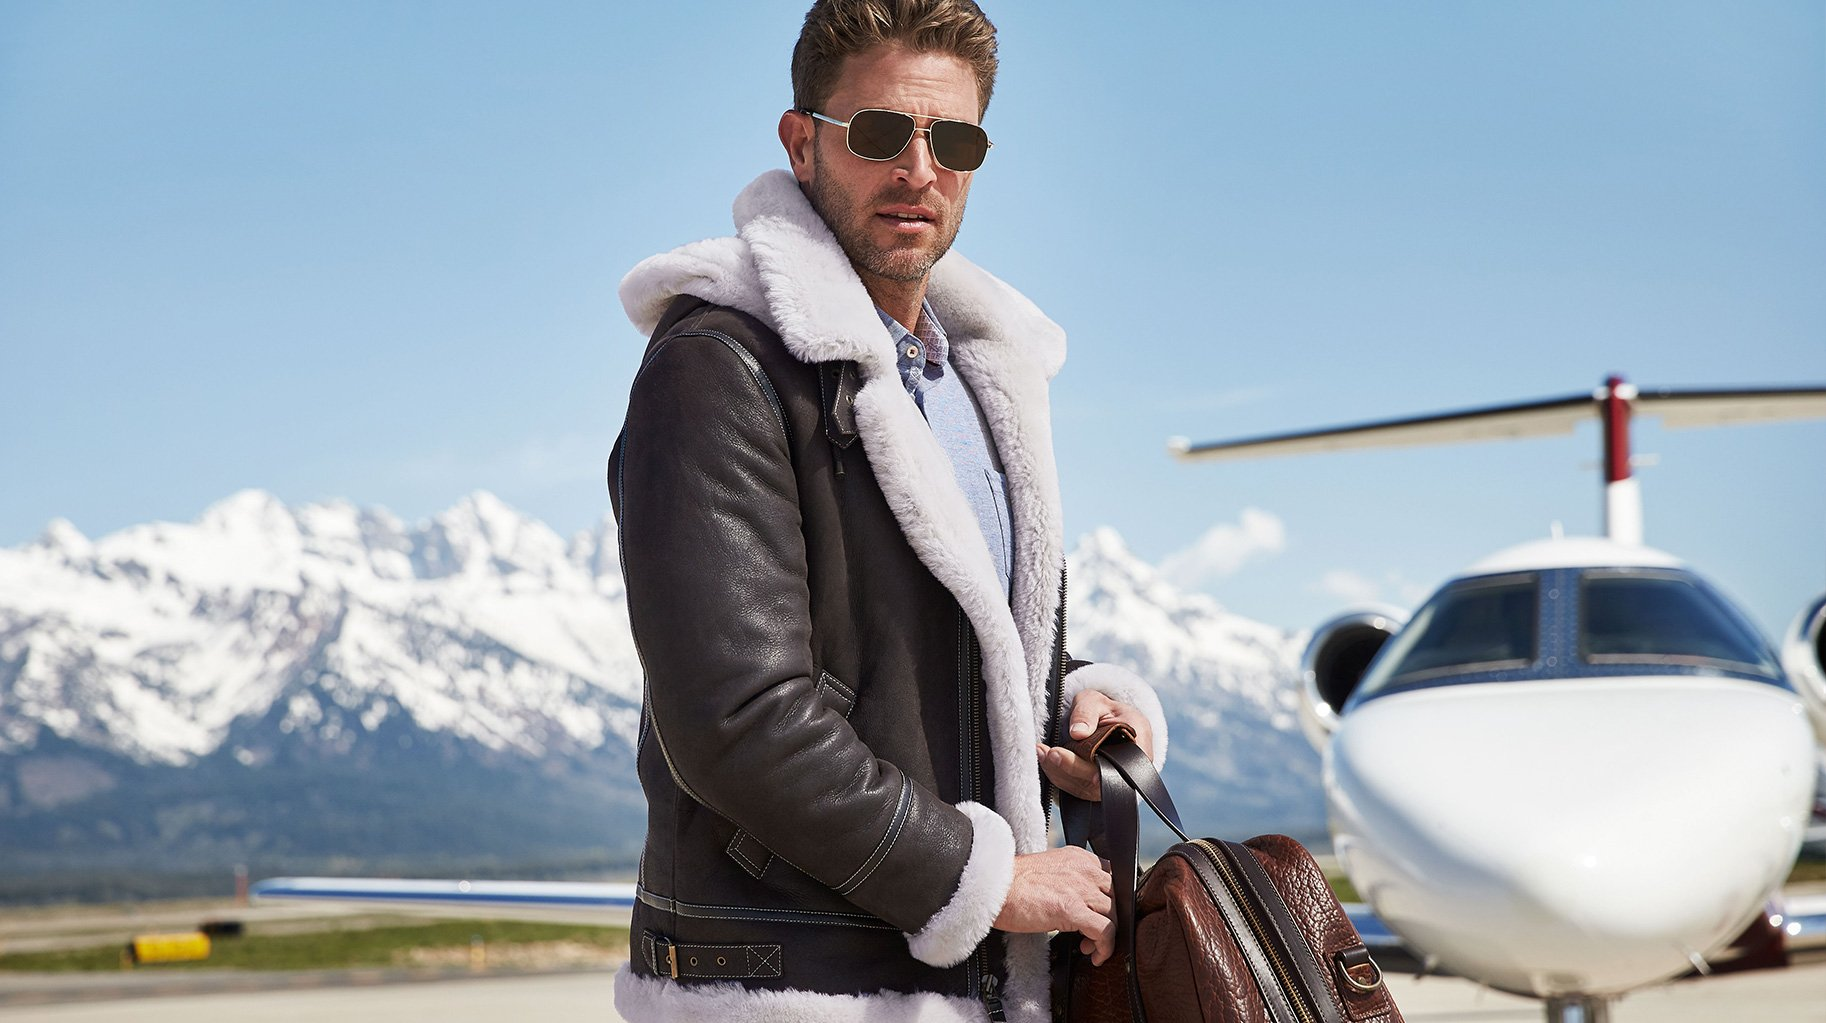 Man in Bomber Jacket with small airplane